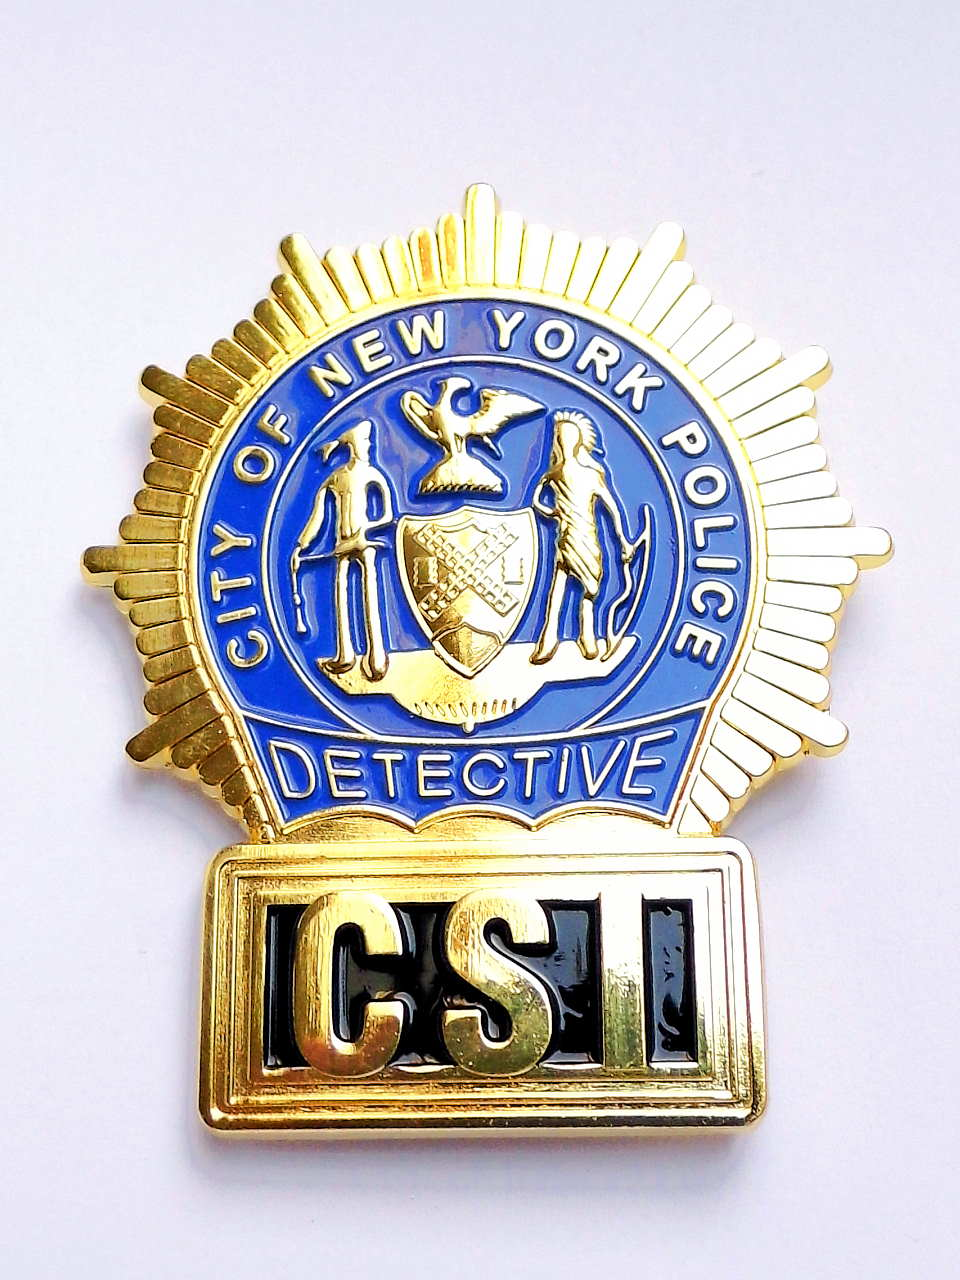 Bild Nr. 2 CSI New York Police DETECTIVE BADGE